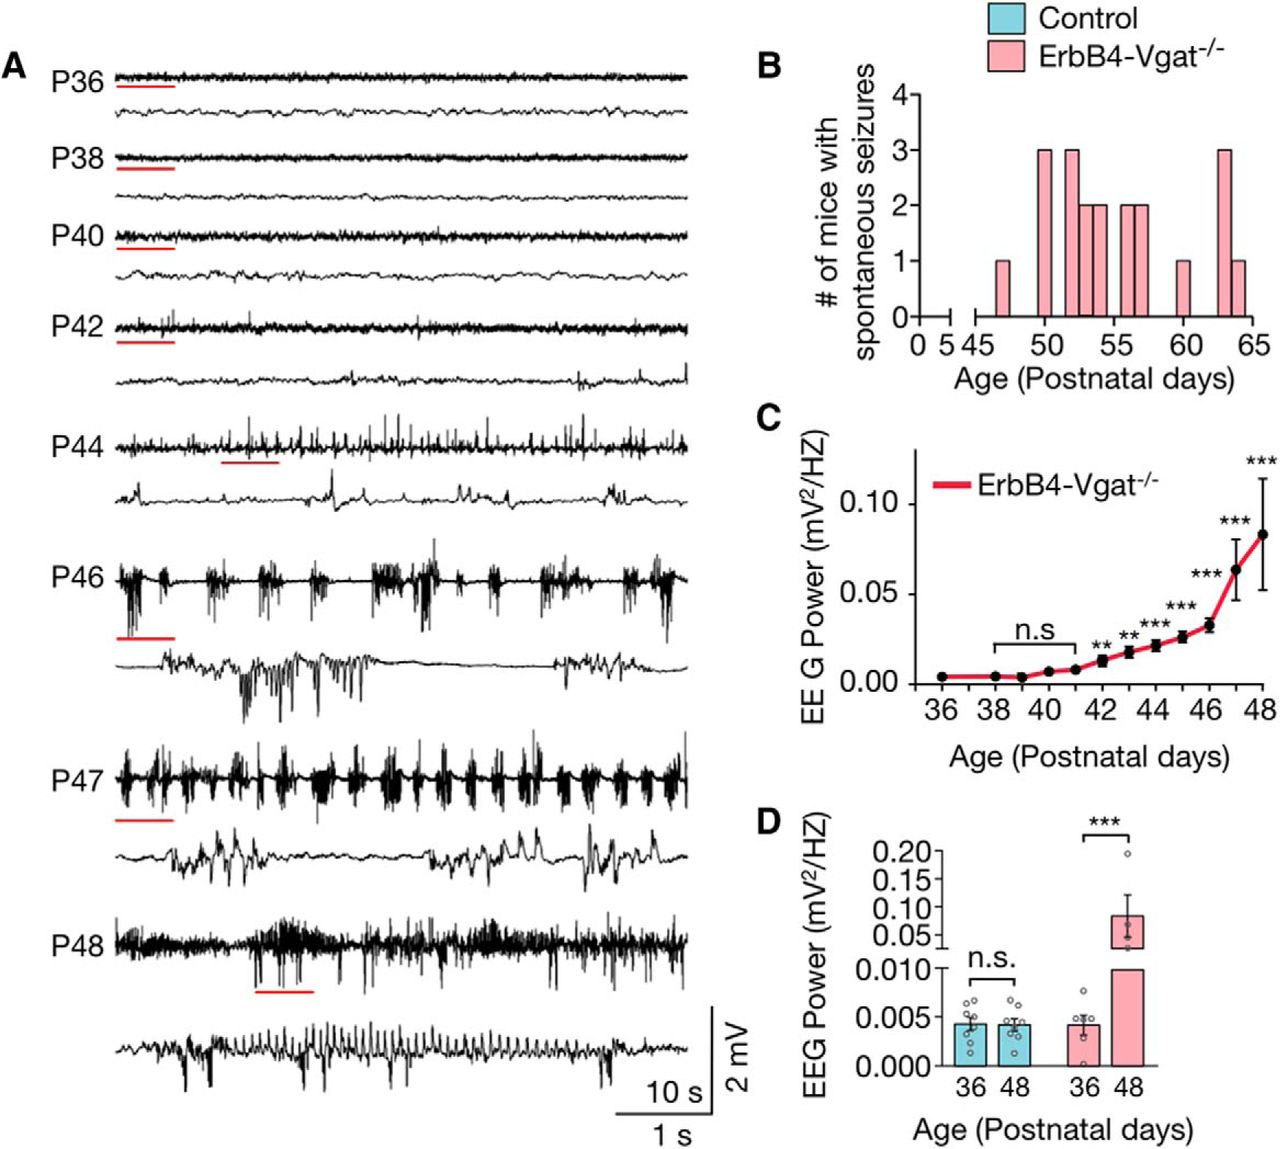 Regulation of Synapse Development by Vgat Deletion from ErbB4